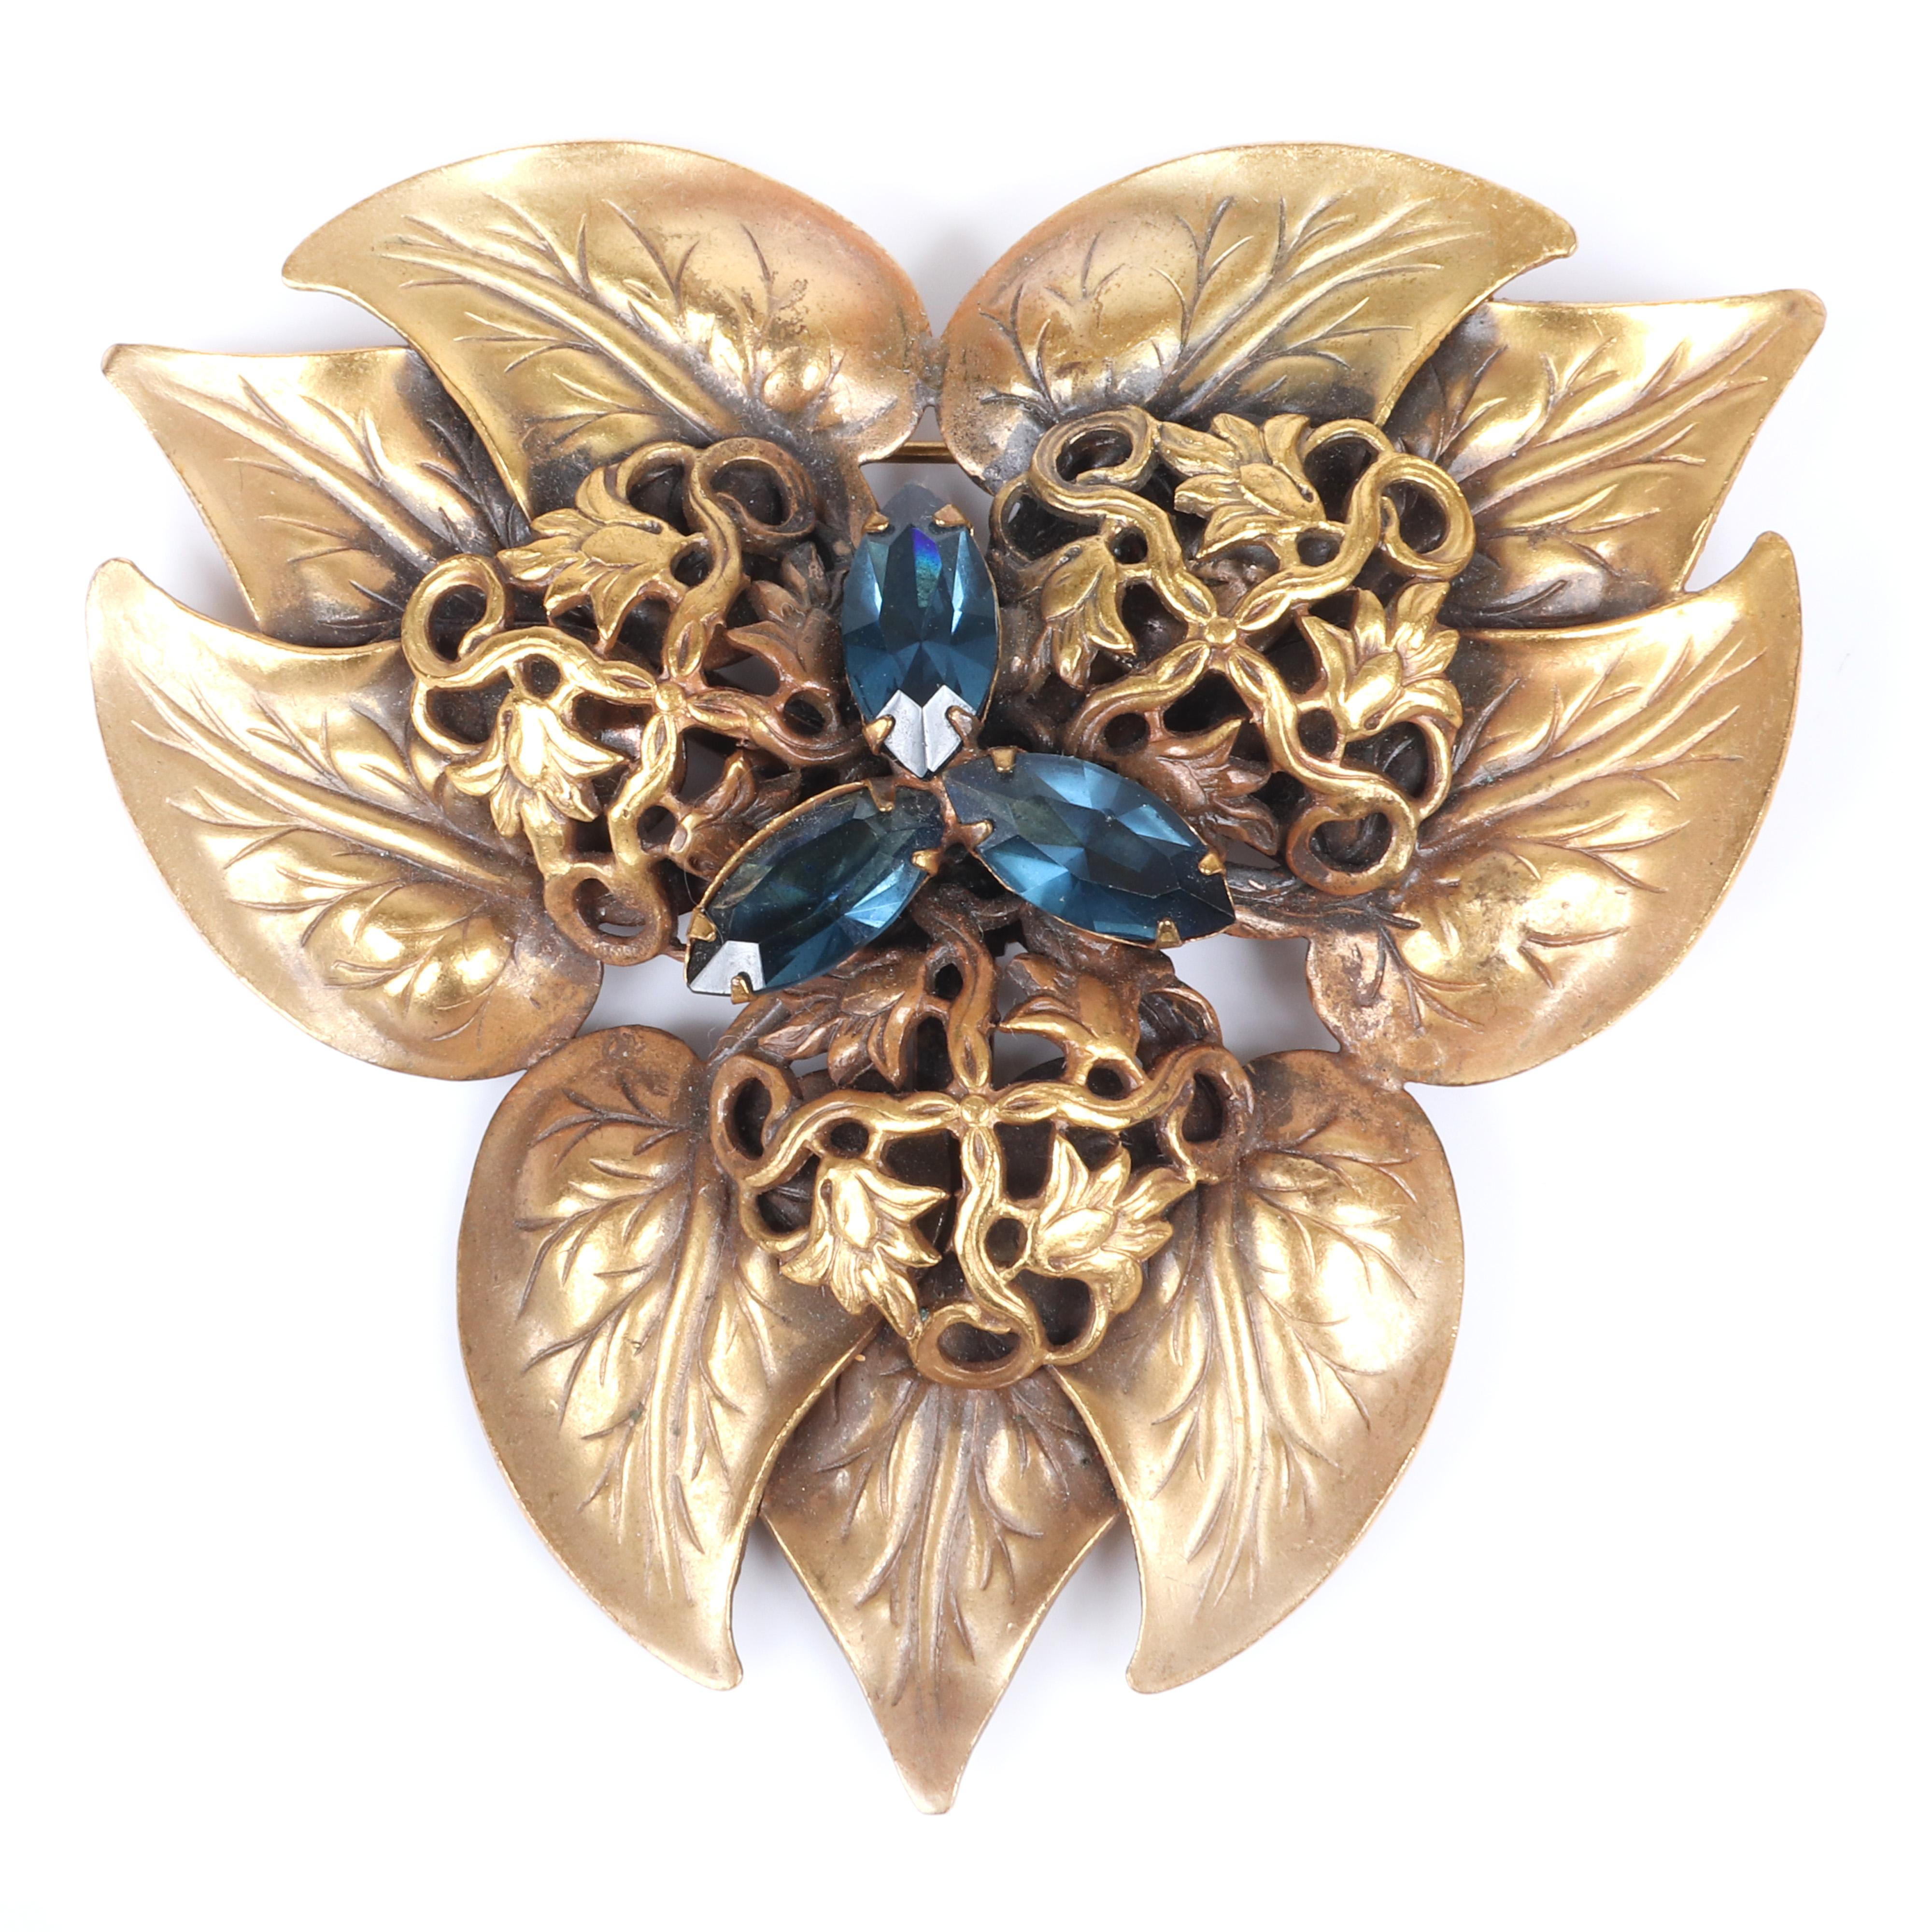 "Joseff of Hollywood large gold tone brooch with layered heart-shaped leaves, openwork fines and three large marquise sapphire crystals. 3""H x 3 1/4""W"